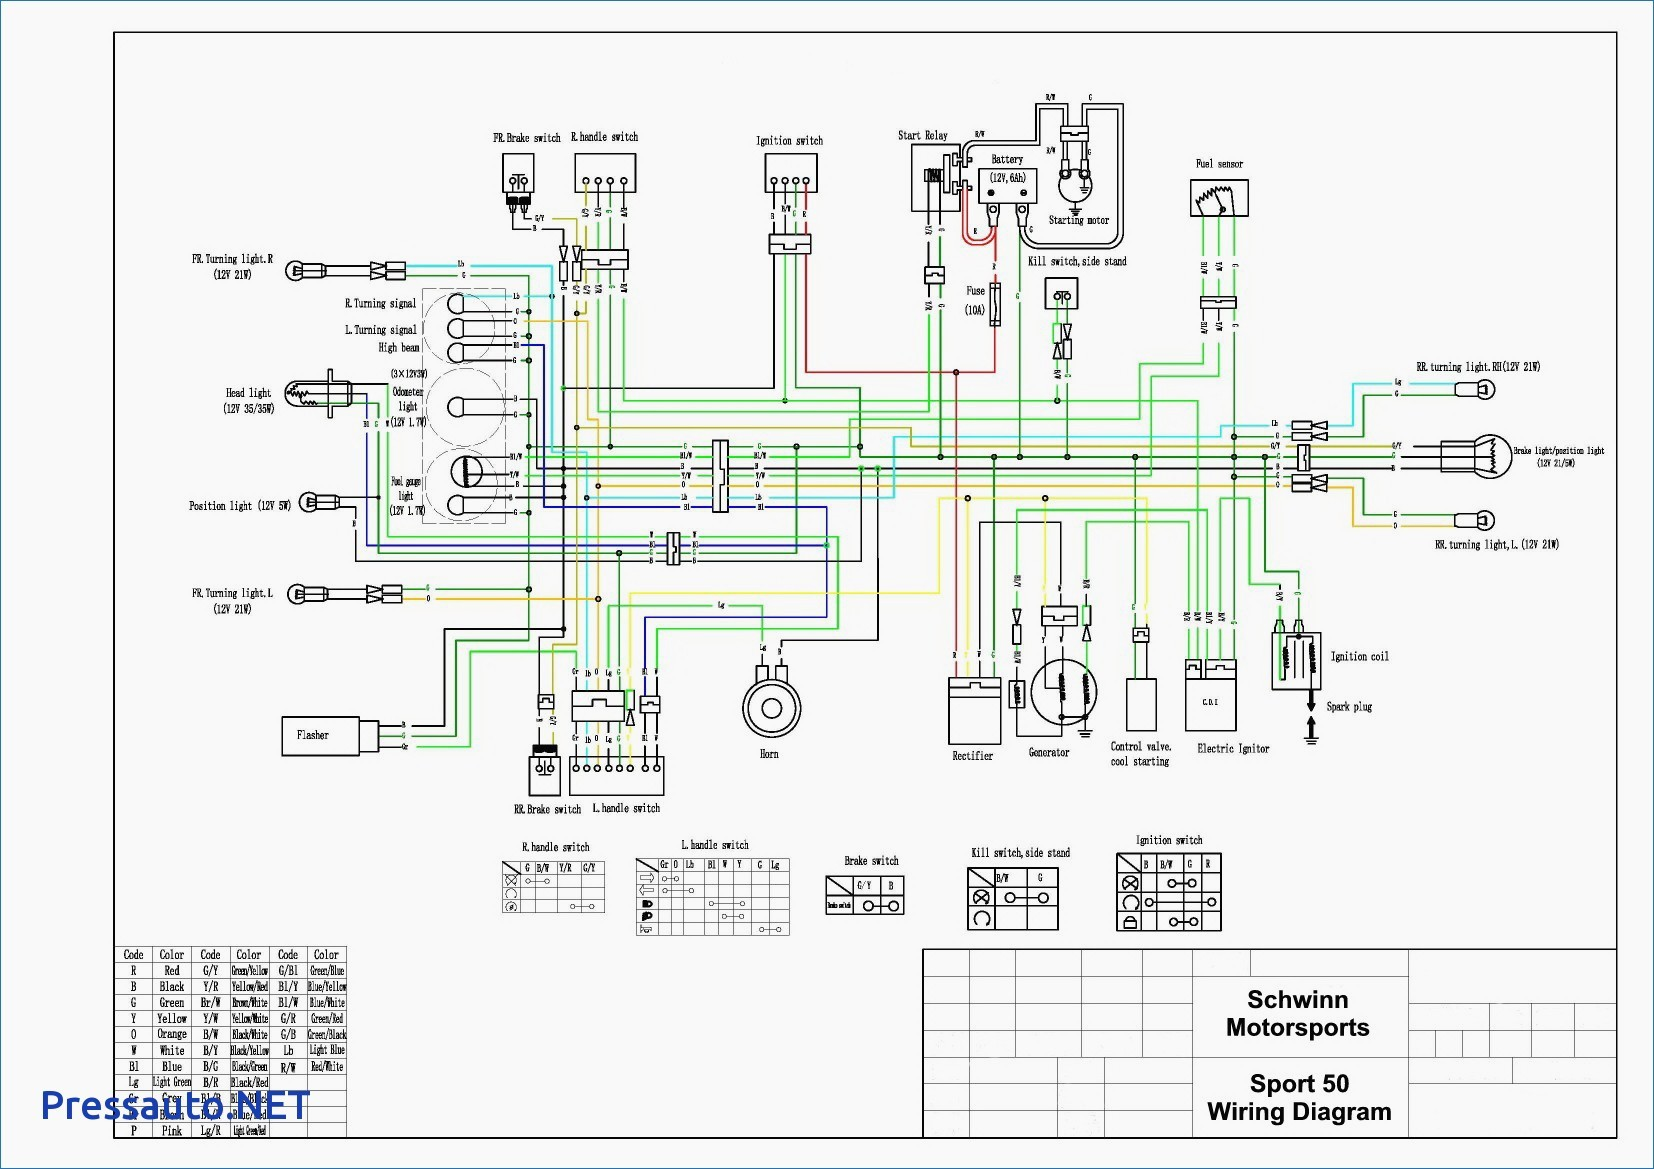 hight resolution of honda moped diagram wiring diagram used honda 50cc scooter engine diagrams